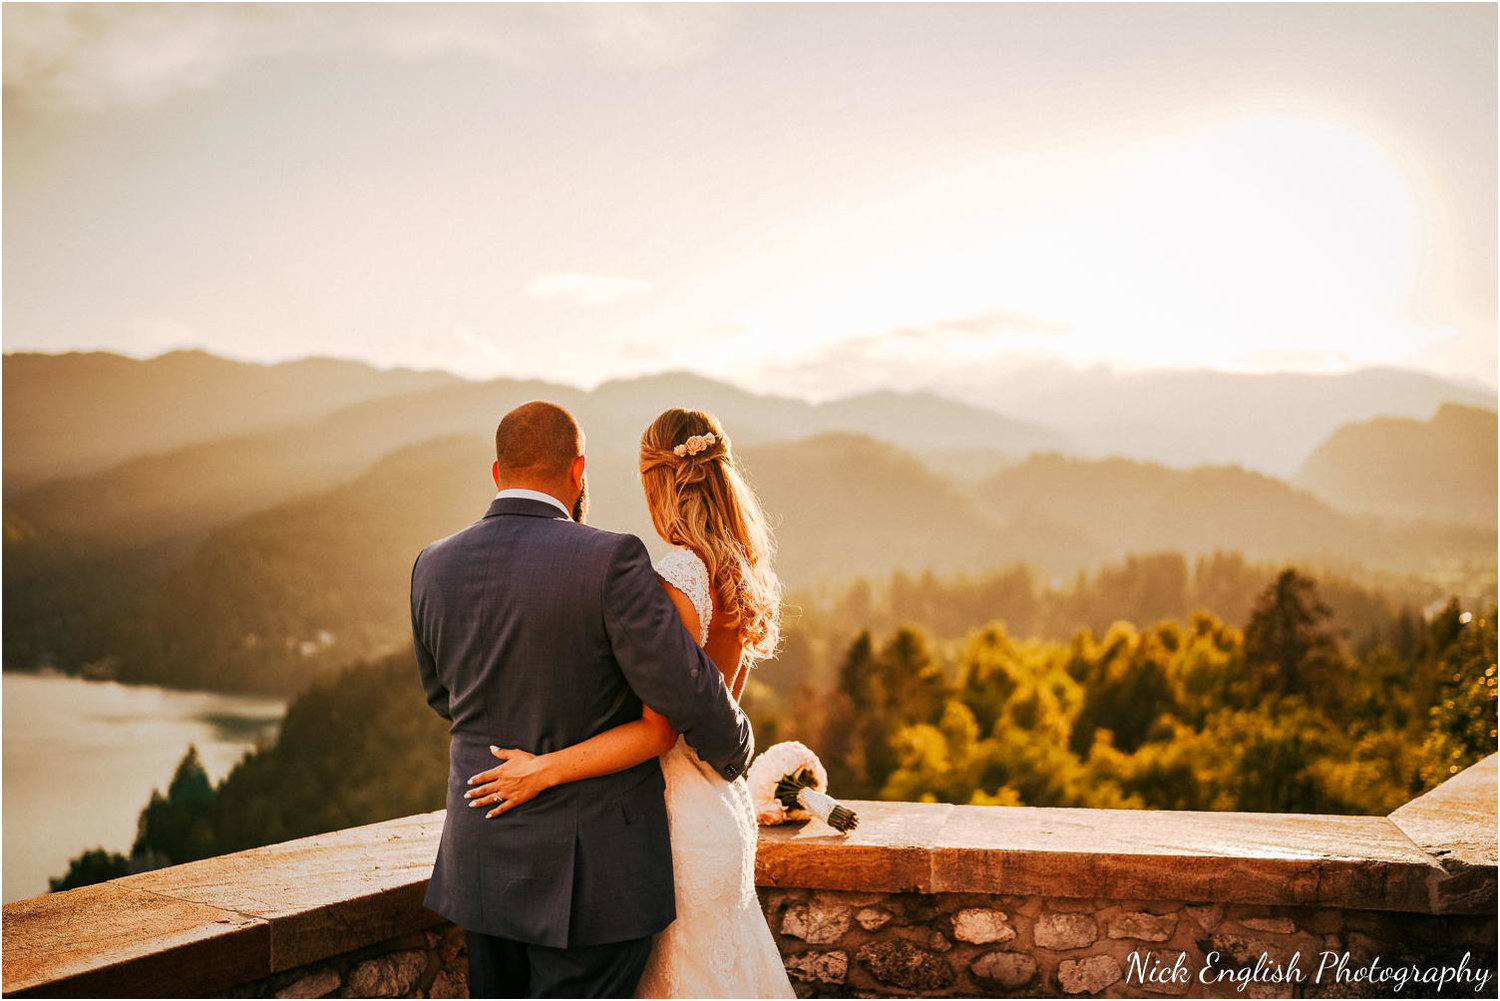 UK & Destination Wedding photographer - lake bled wedding slovenia